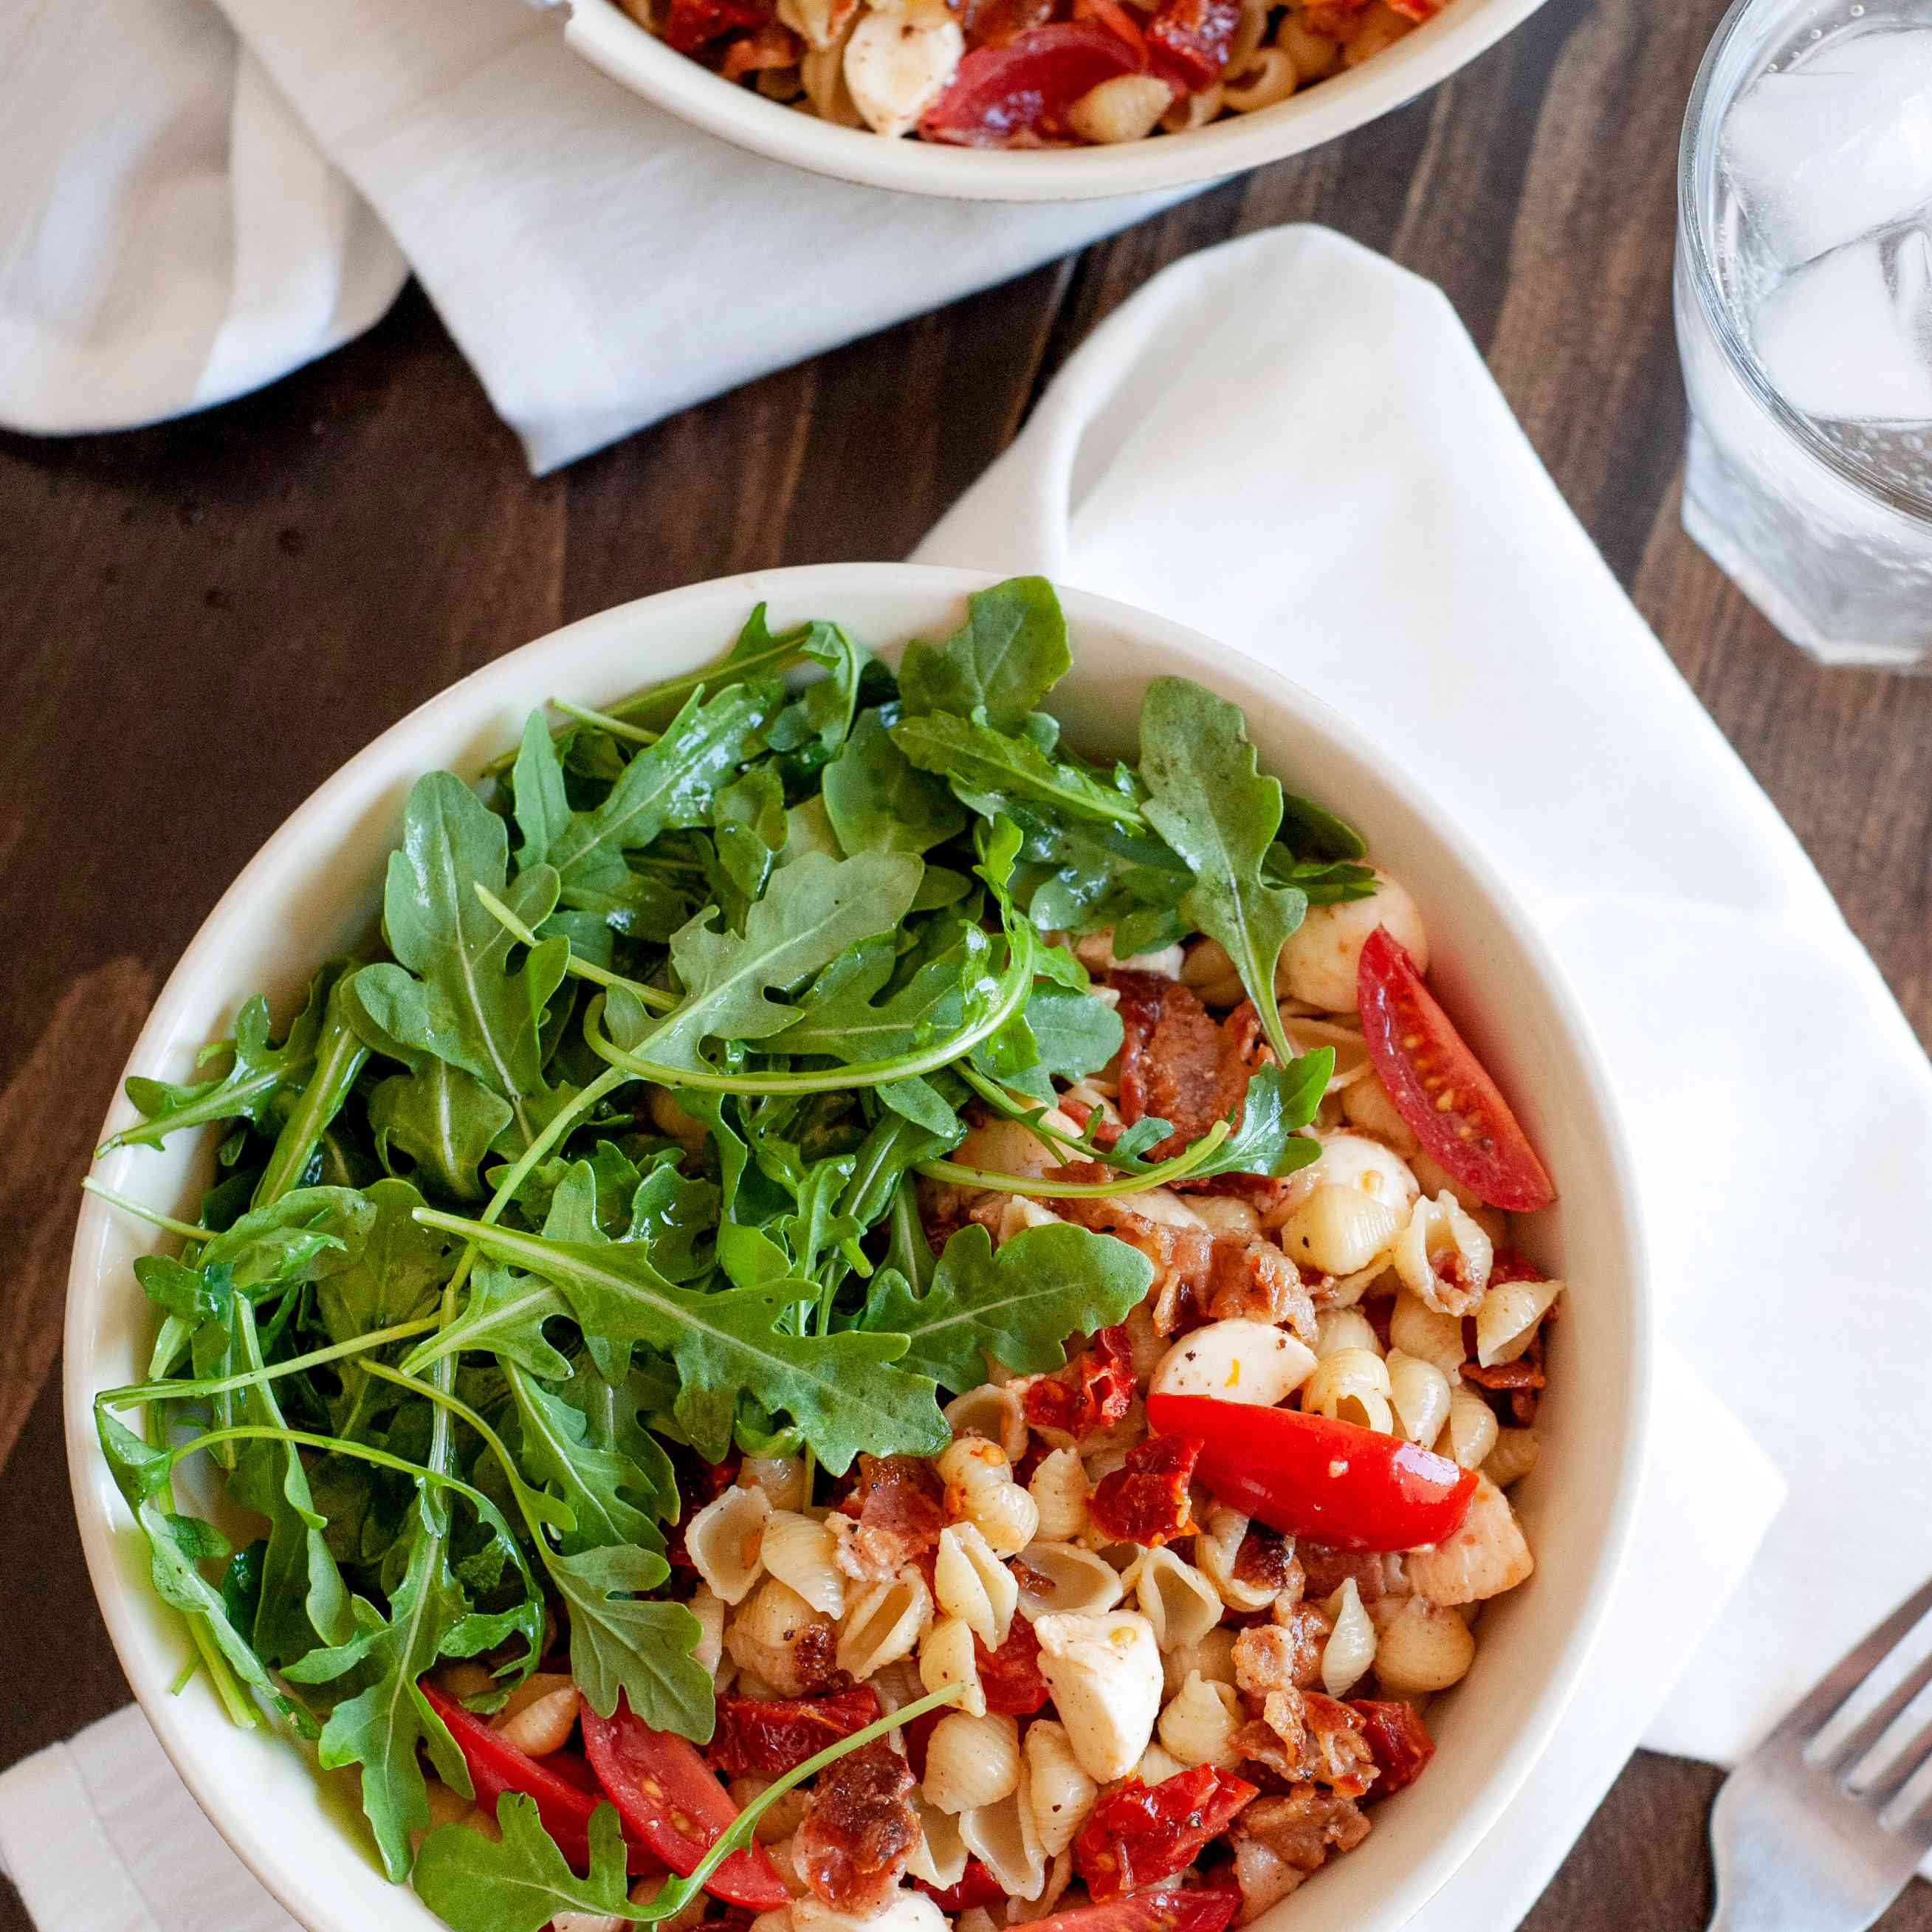 Bacon, tomato, and arugula pasta viewed overhead in a white bowl.